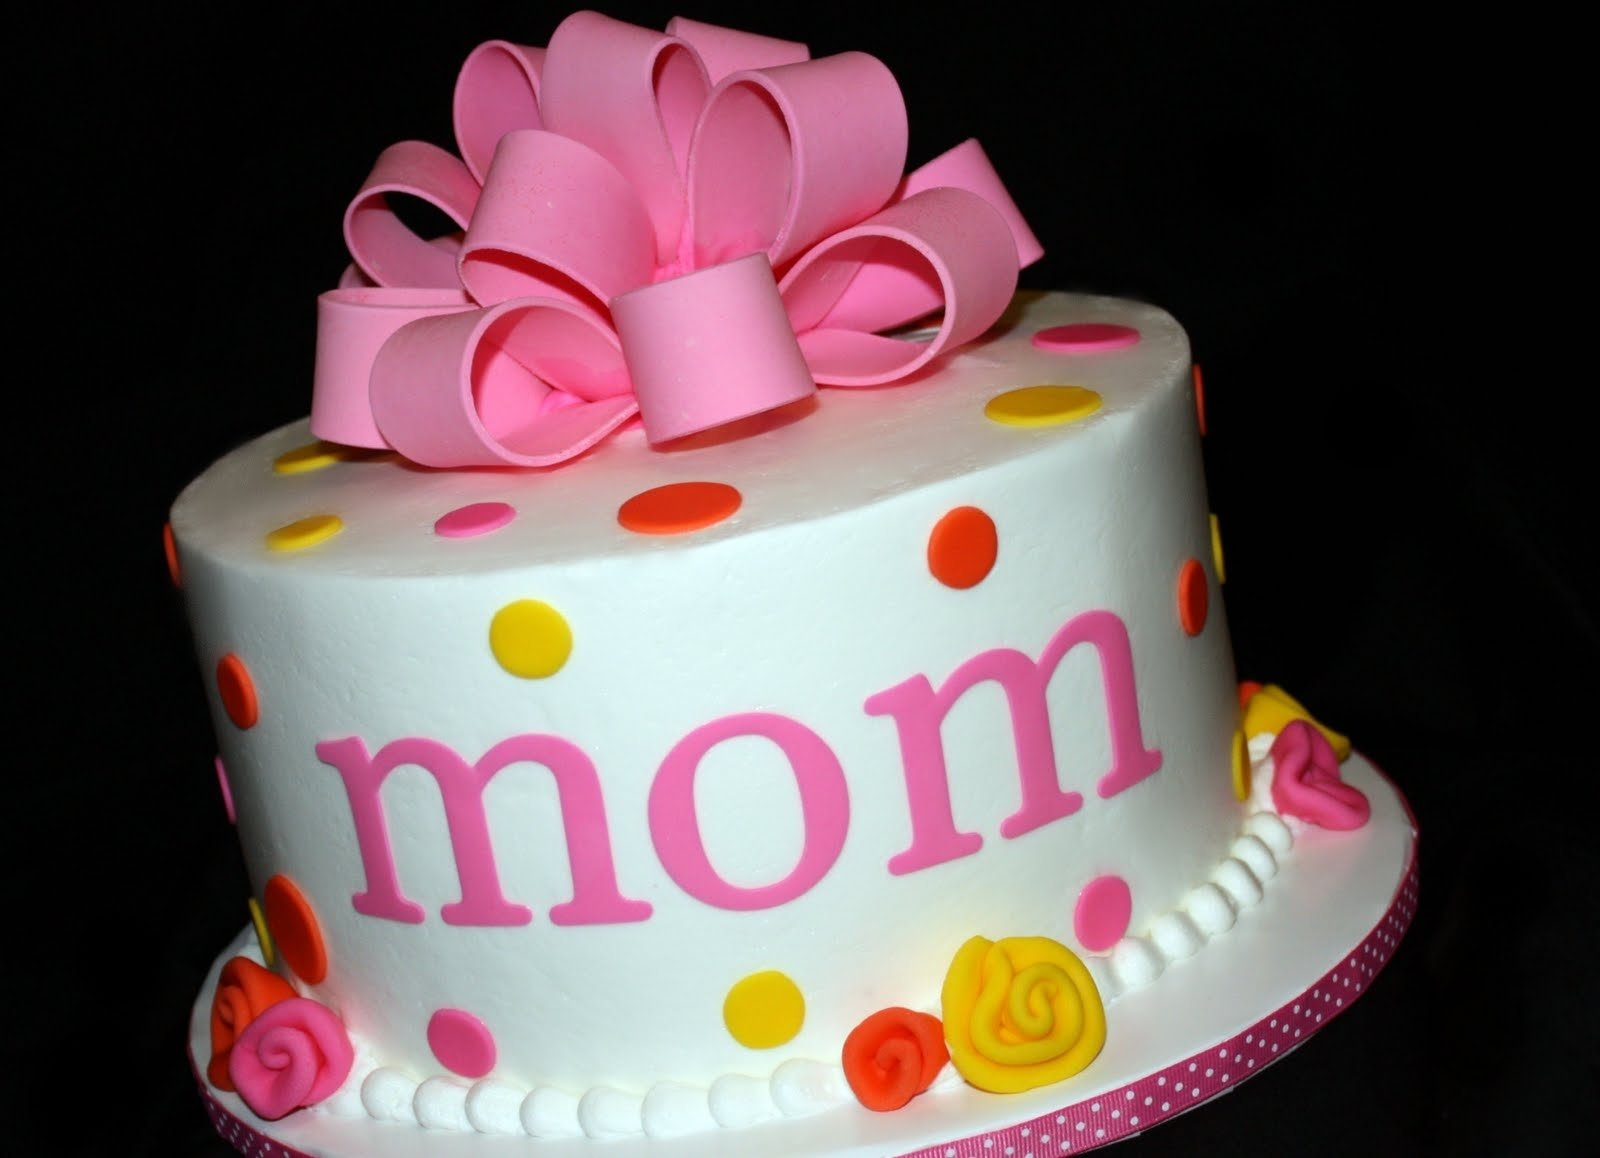 10 Fashionable Birthday Cake Ideas For Mom fun cakes mom birthday cake fun cakes pinterest mom birthday